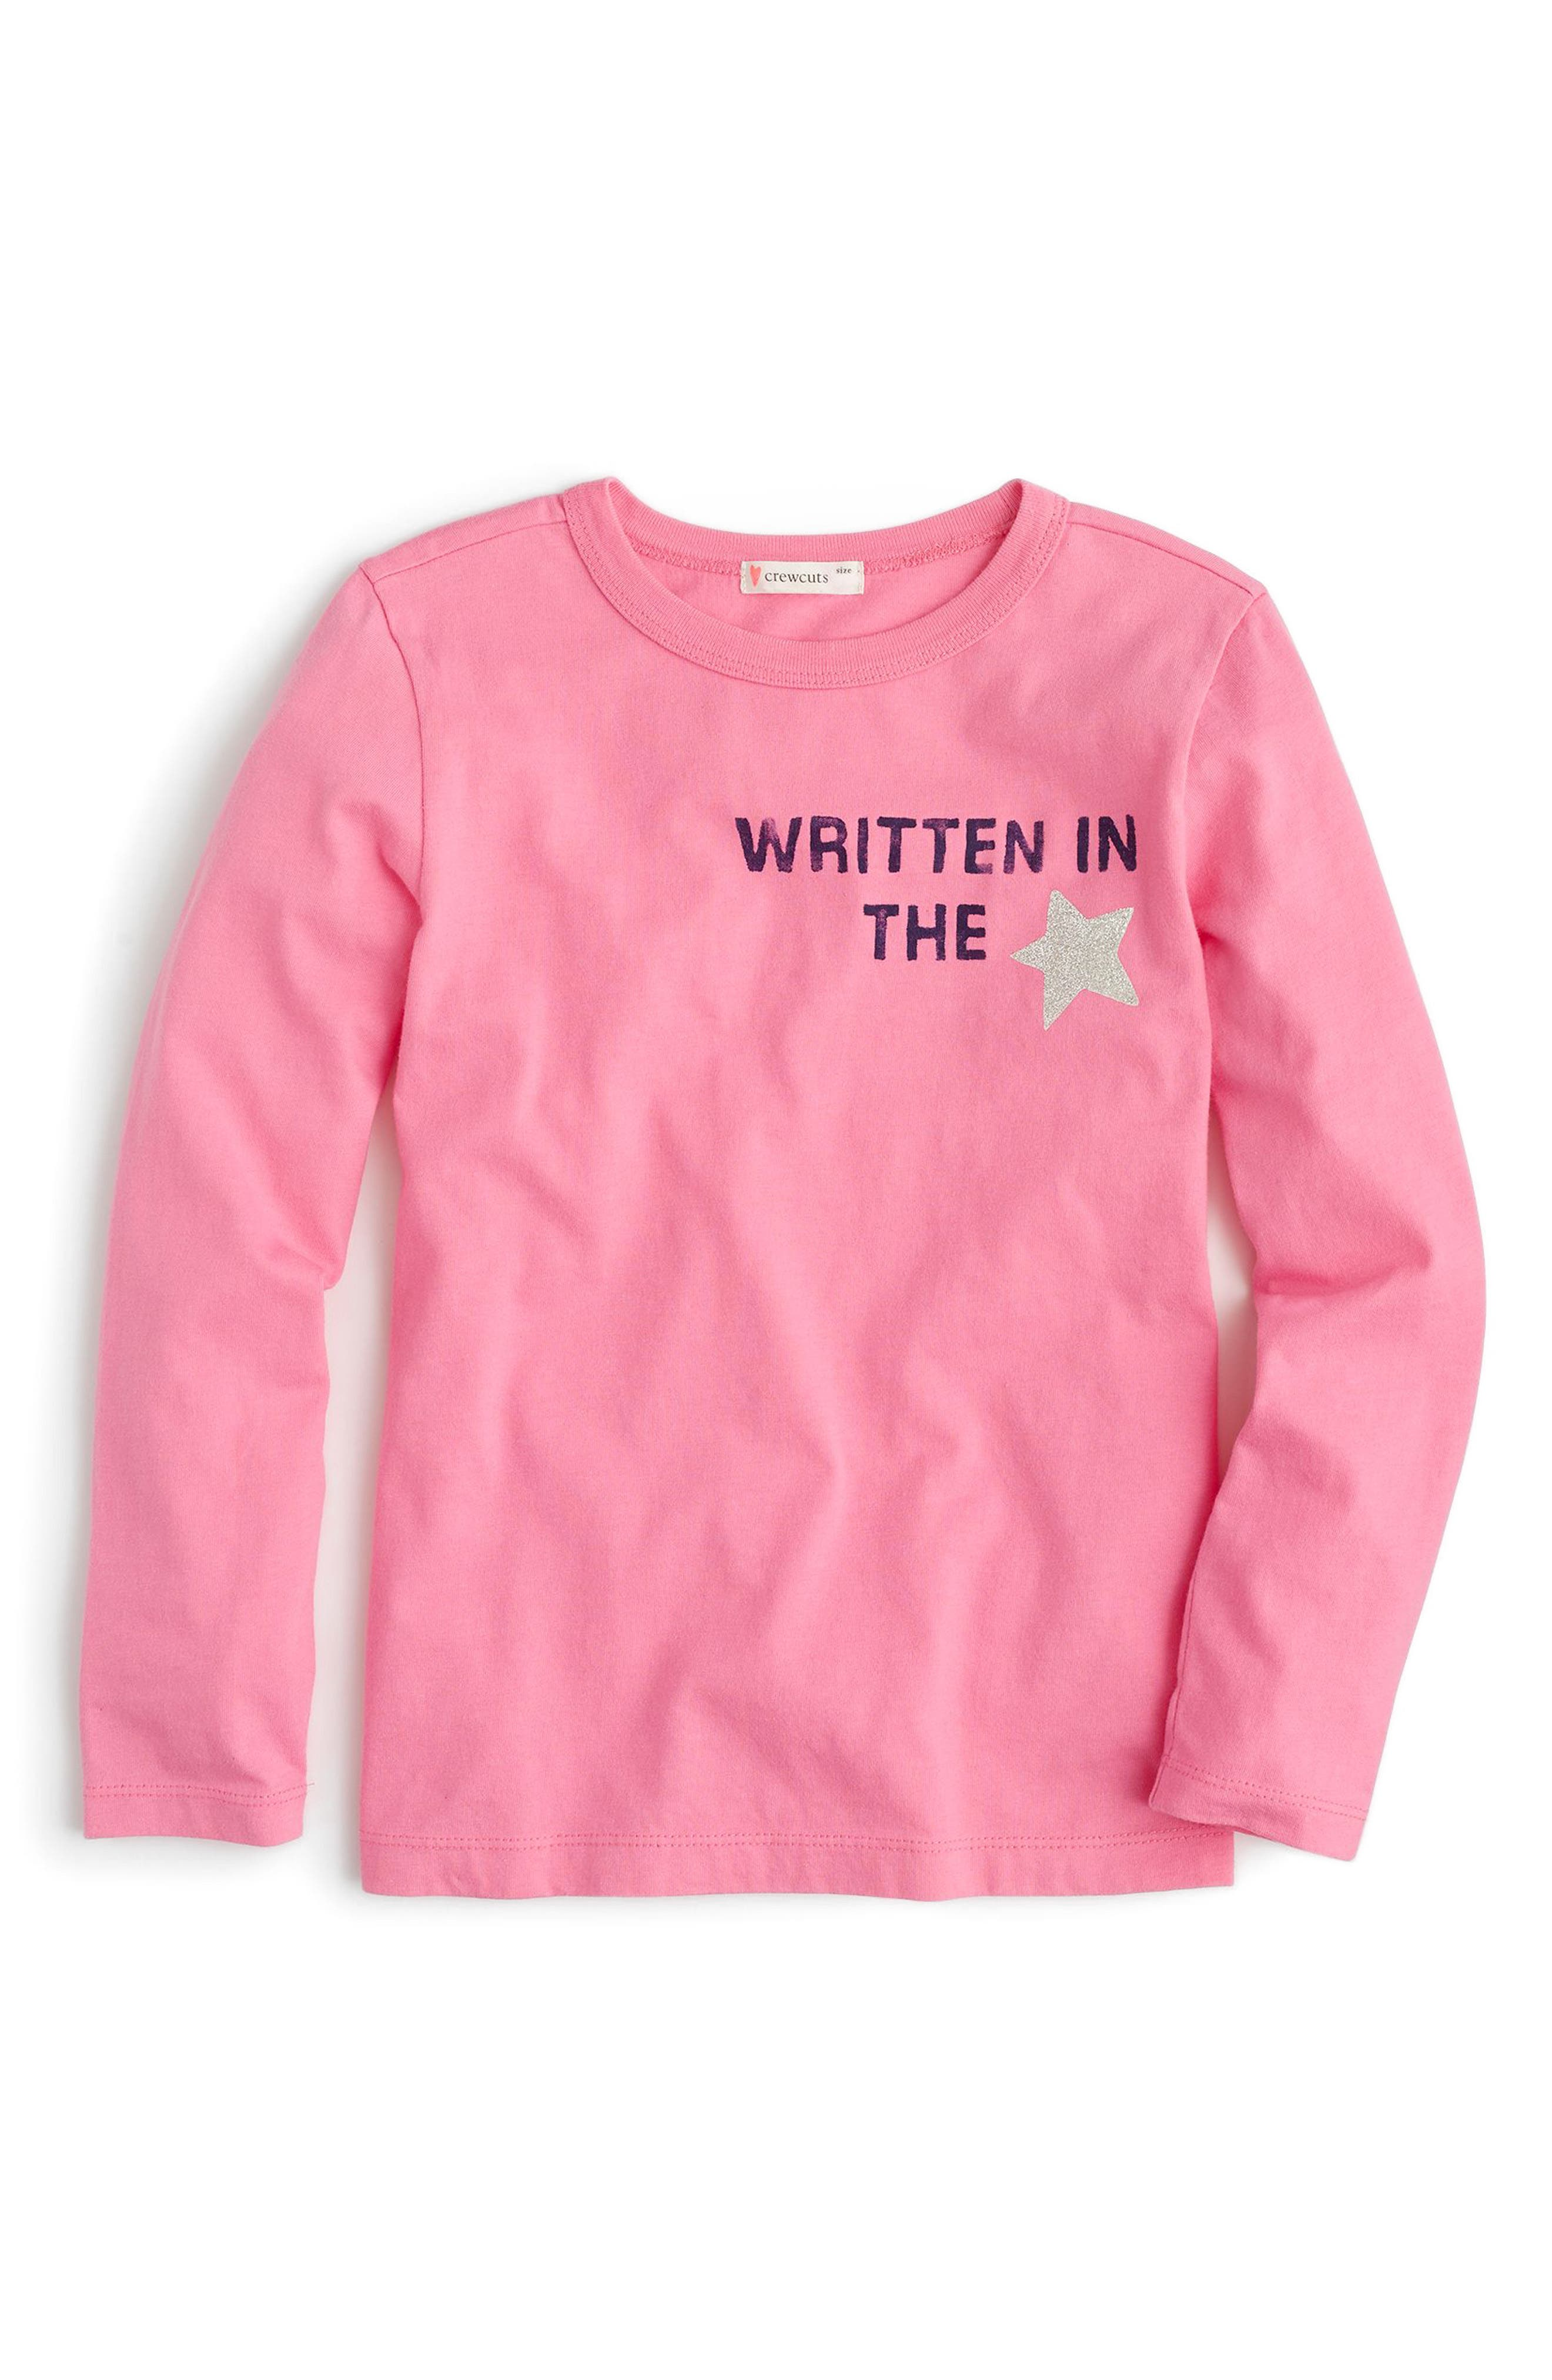 Written In The Stars Tee,                             Main thumbnail 1, color,                             650